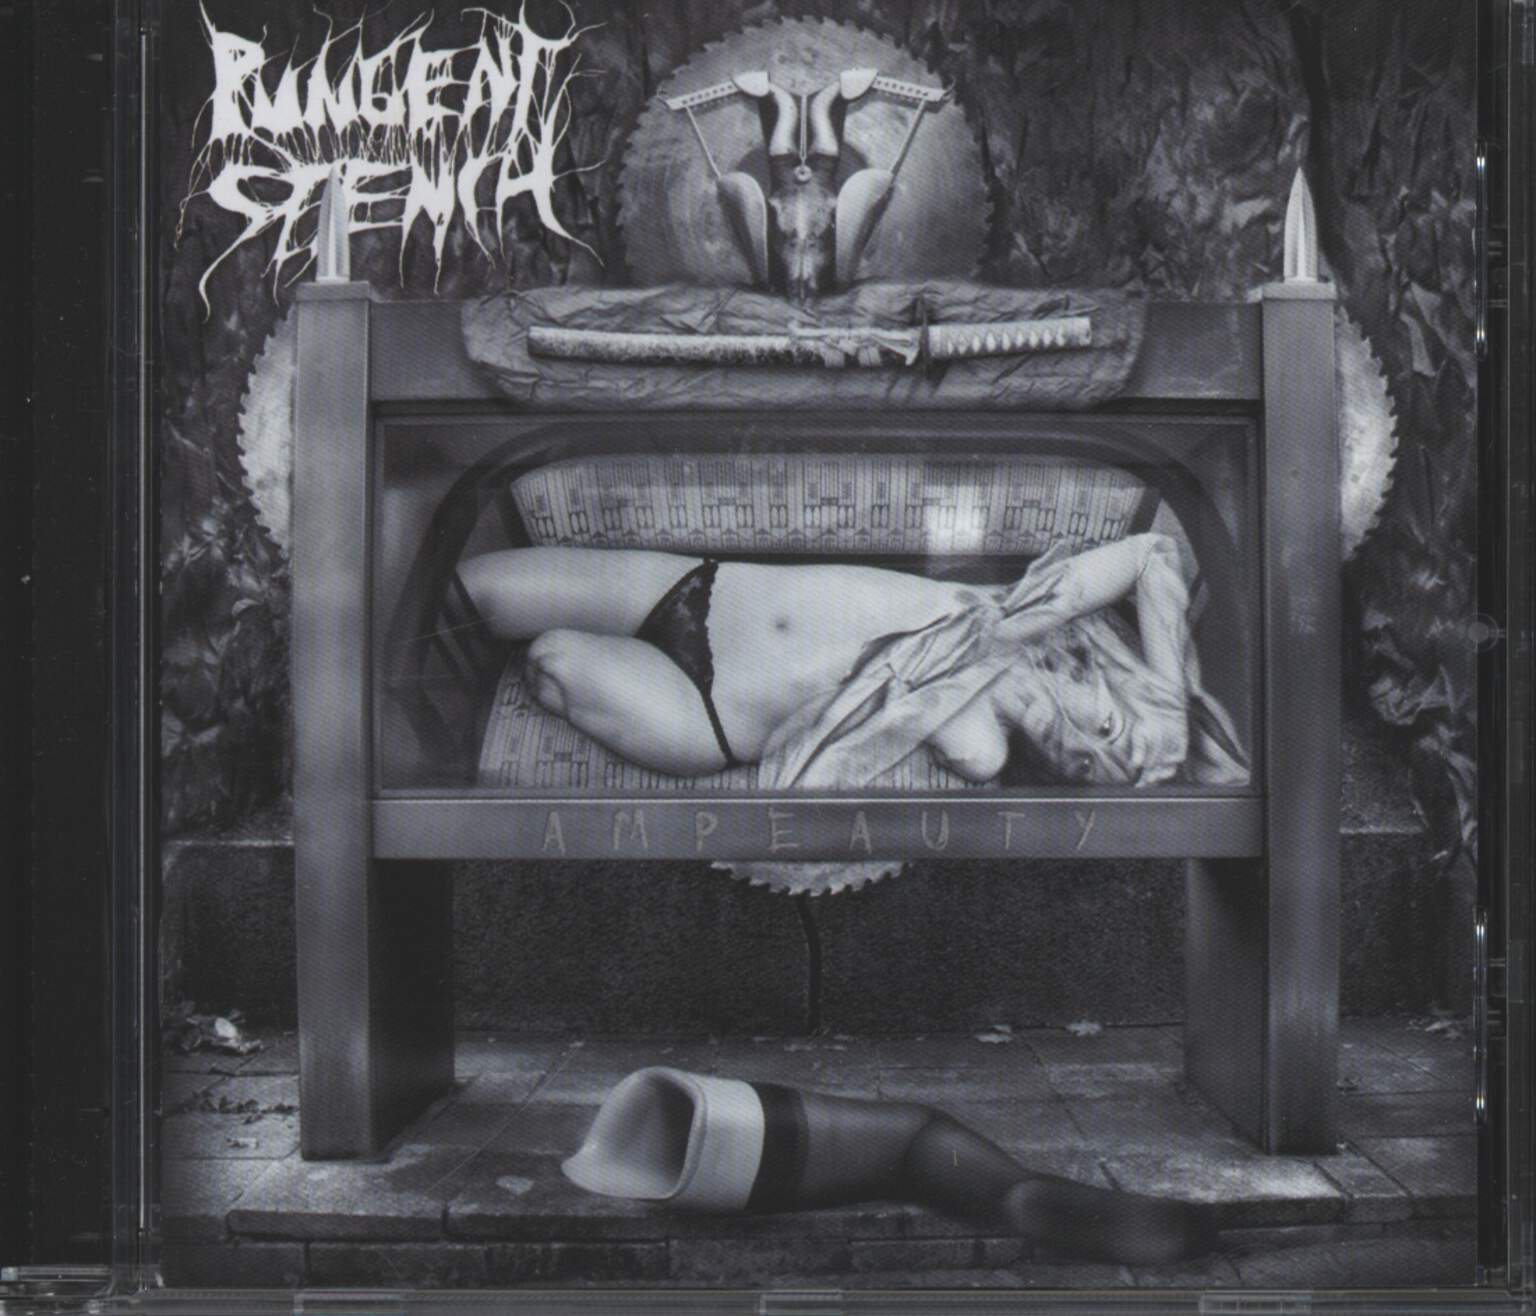 Pungent Stench: Ampeauty, CD